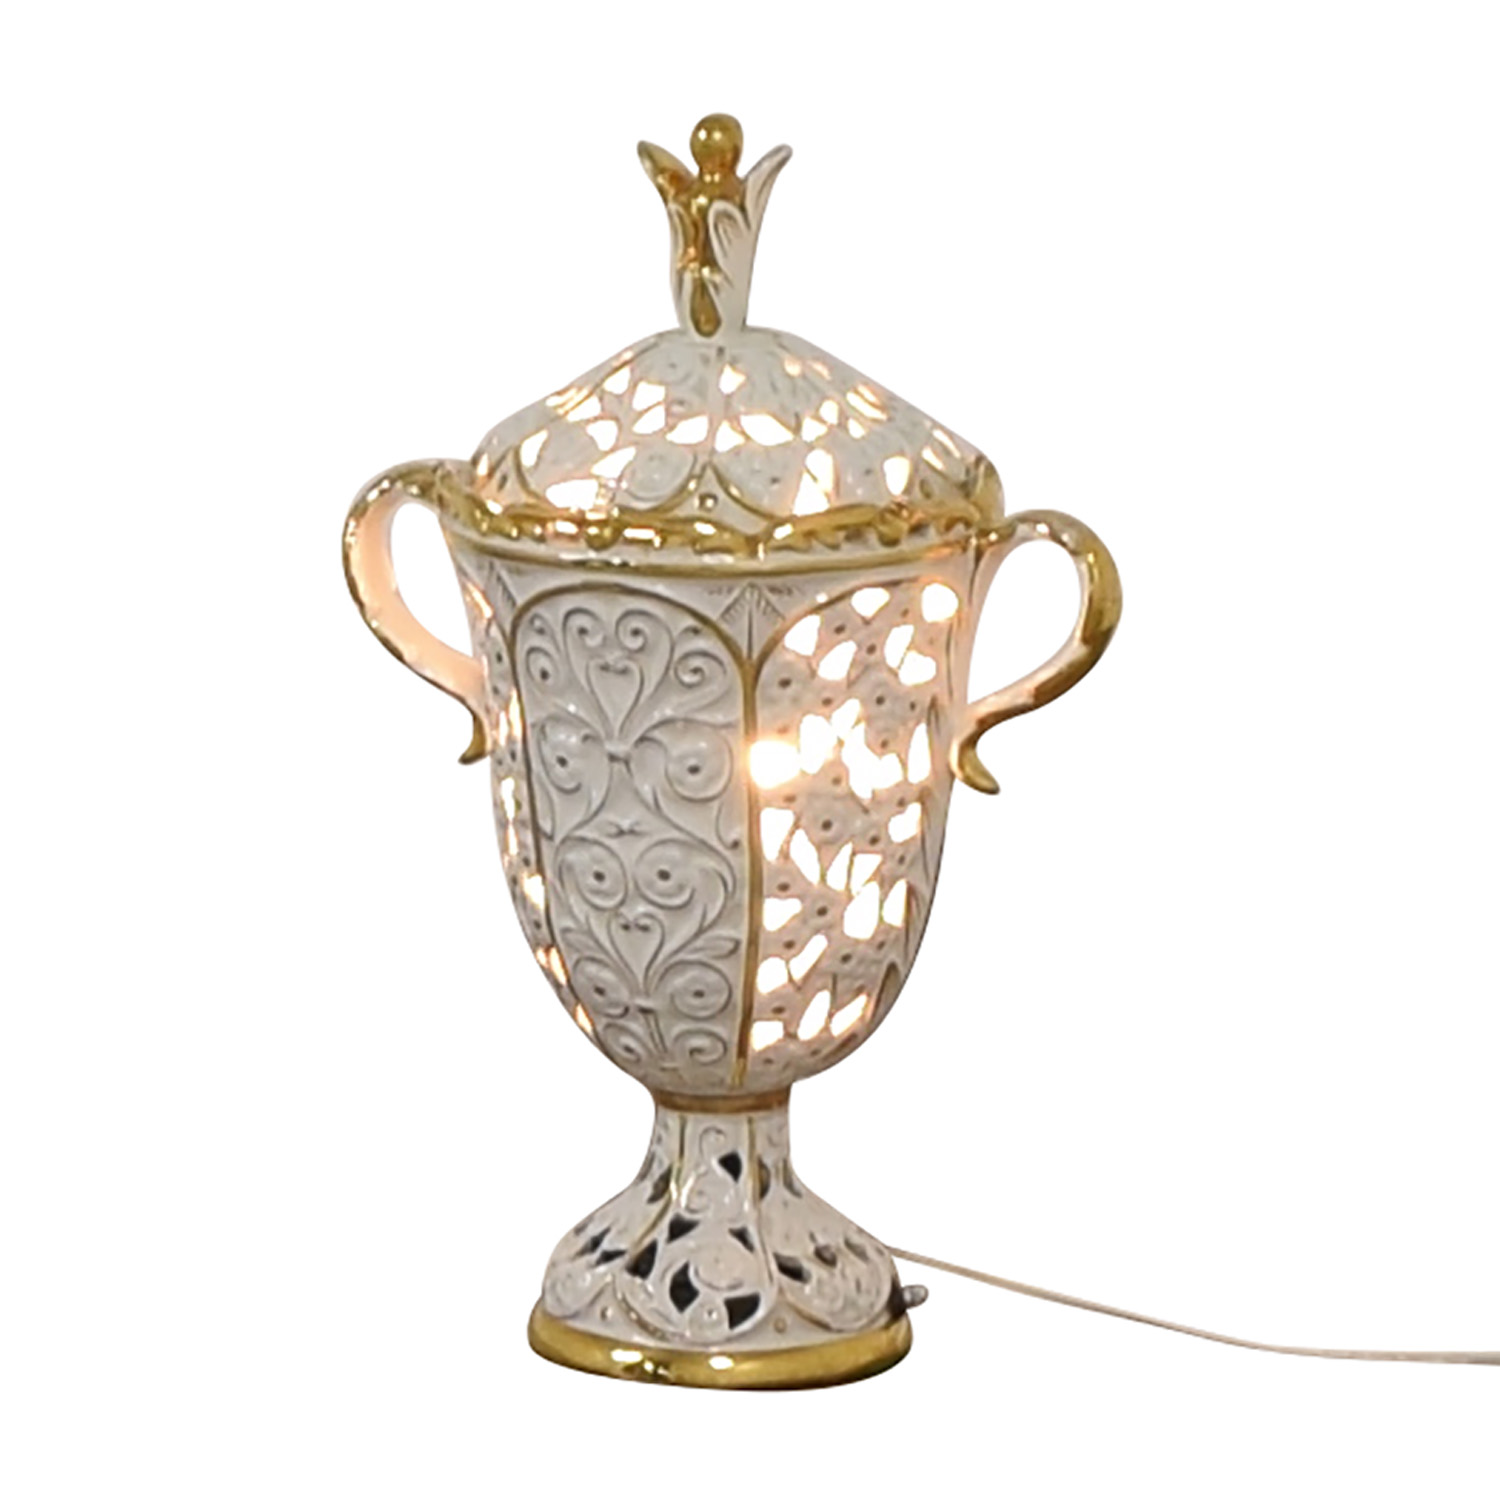 Antique White and Gold Porcelain Pierced Electric Lamp discount